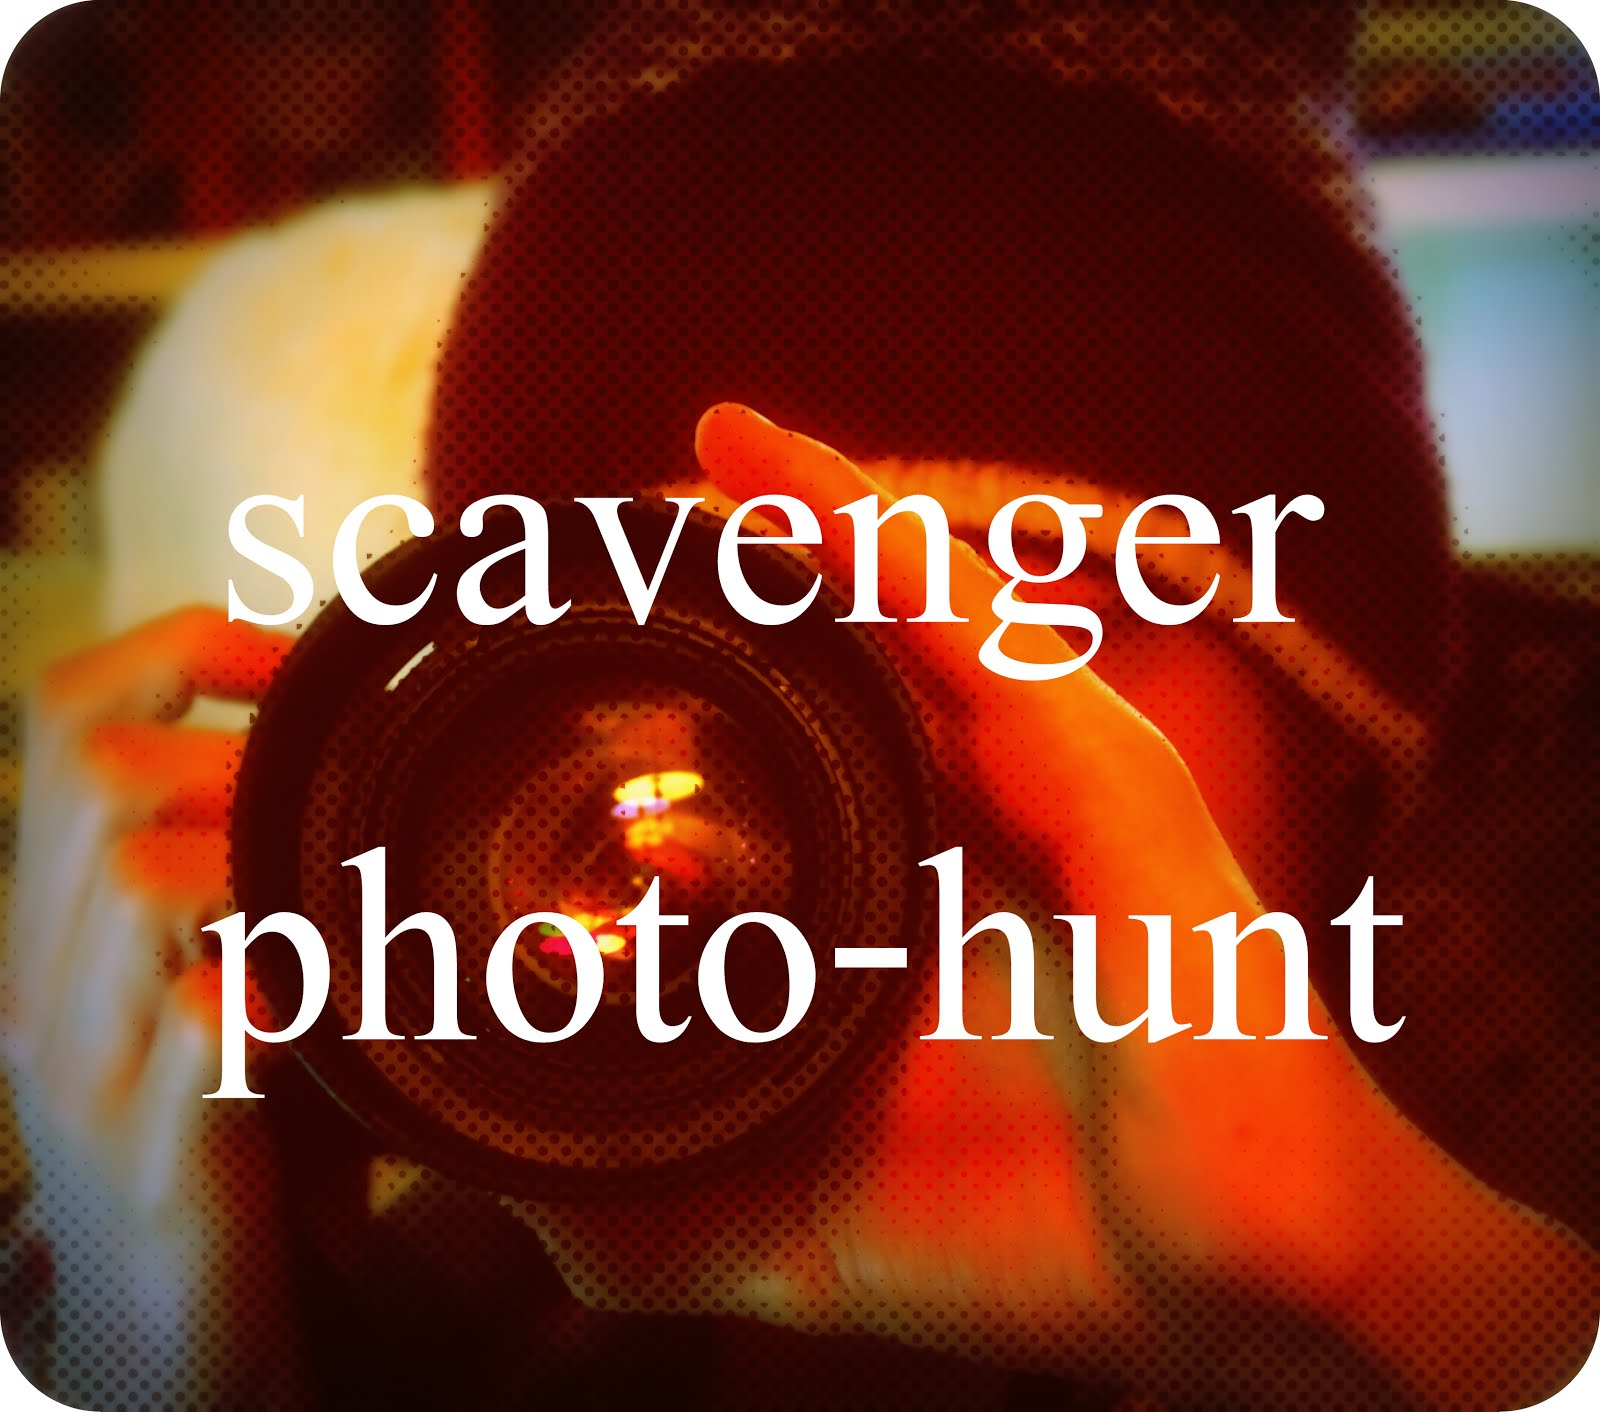 Scavenger photo-hunt BIG REVEAL for AUGUST is...